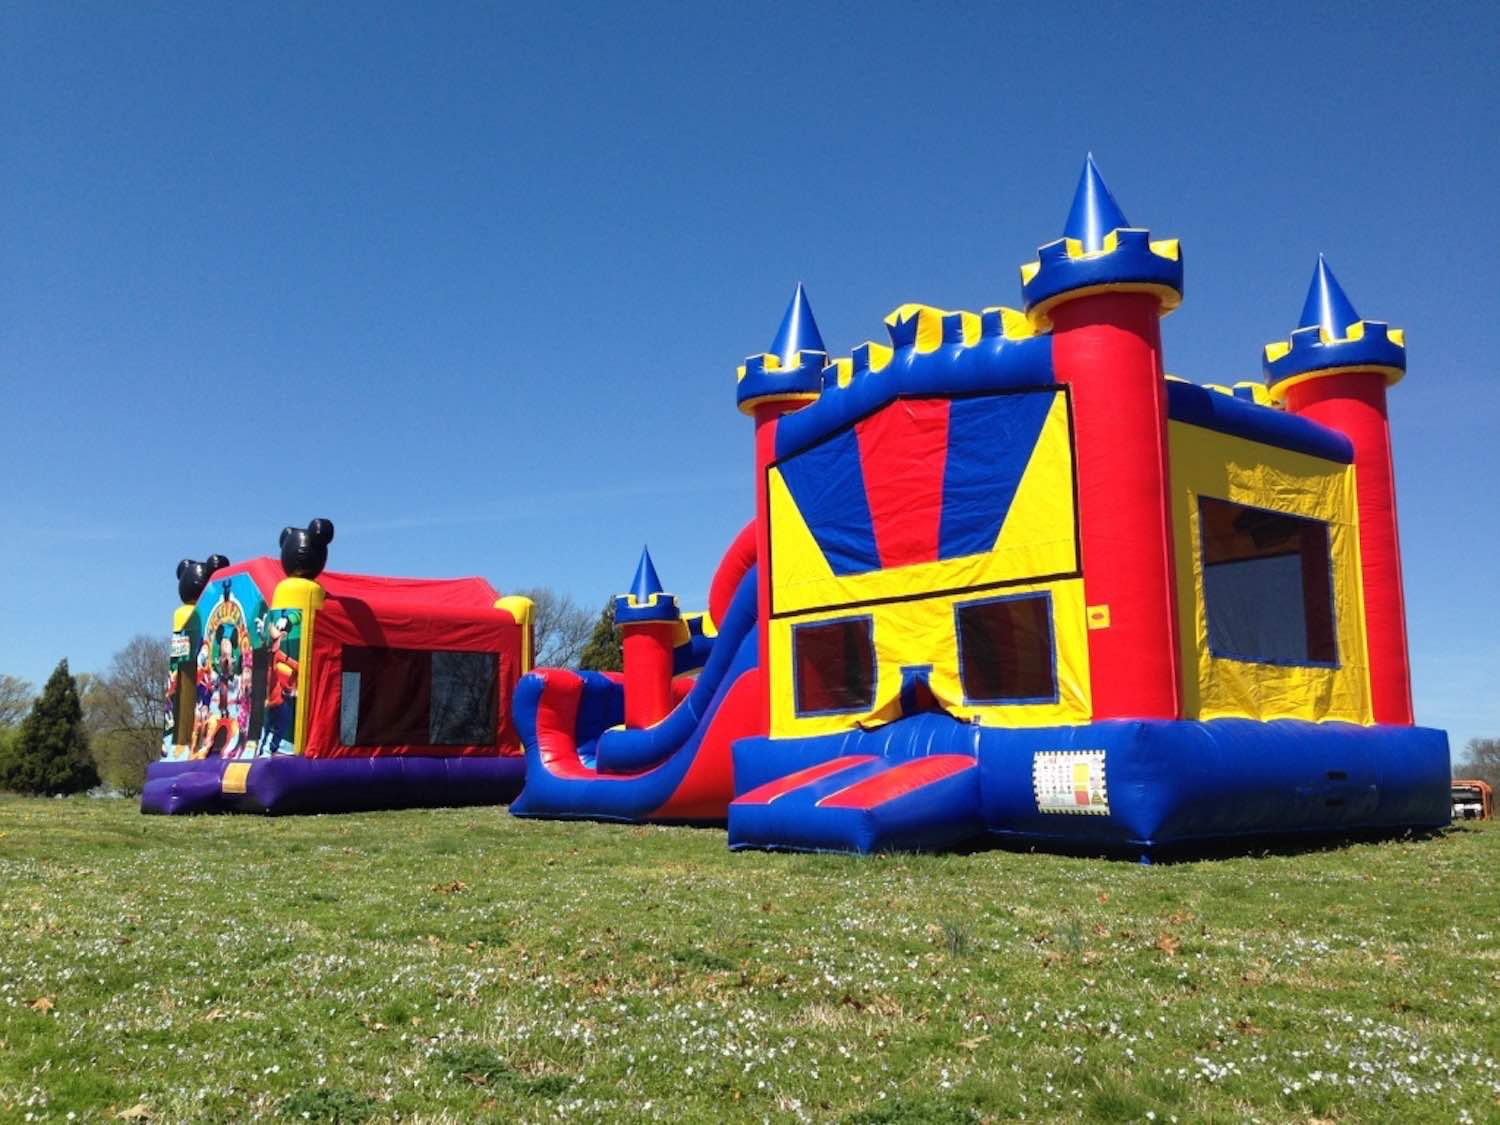 Kings Castle Combo and Mickey Fun Park bounce house.